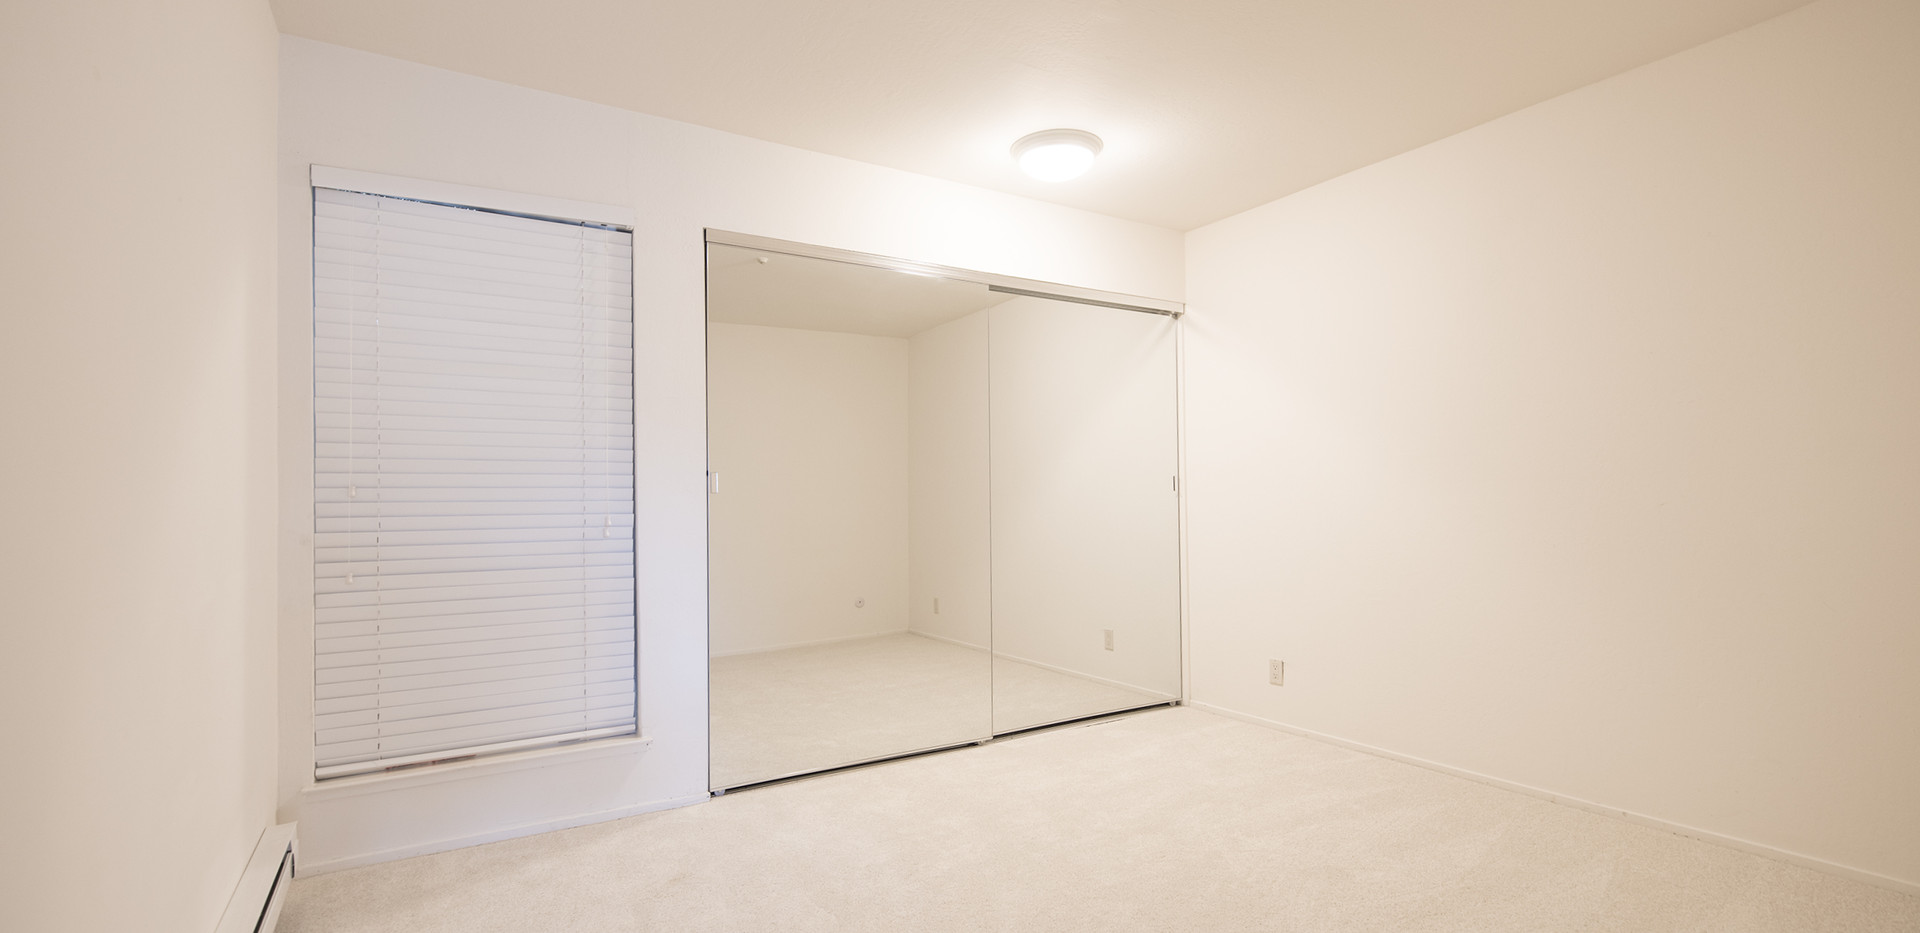 Bedroom, closet with adjustable shelving